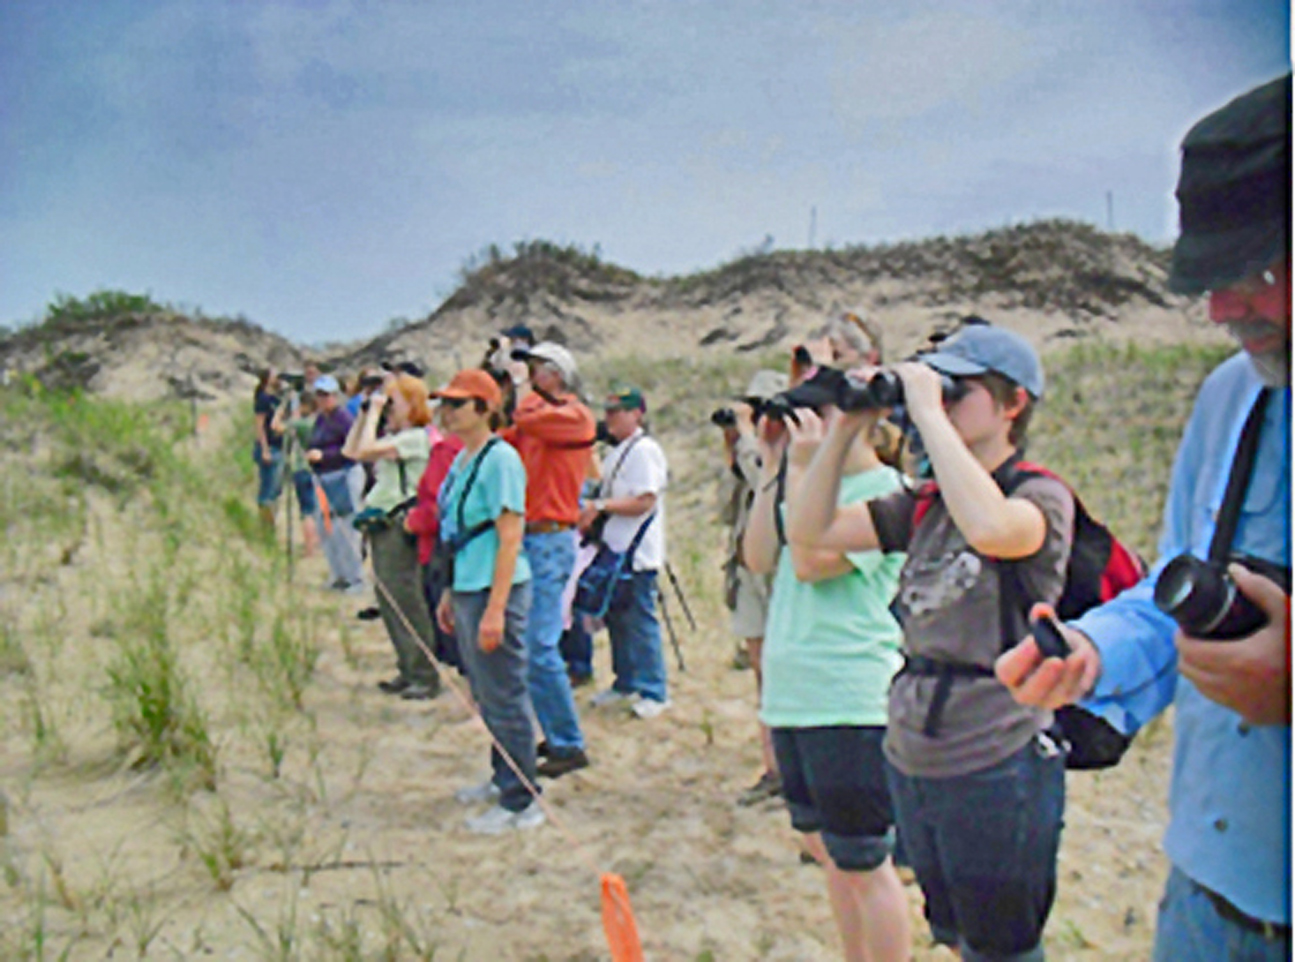 Birders checking out the plovers at Sleeping Bear